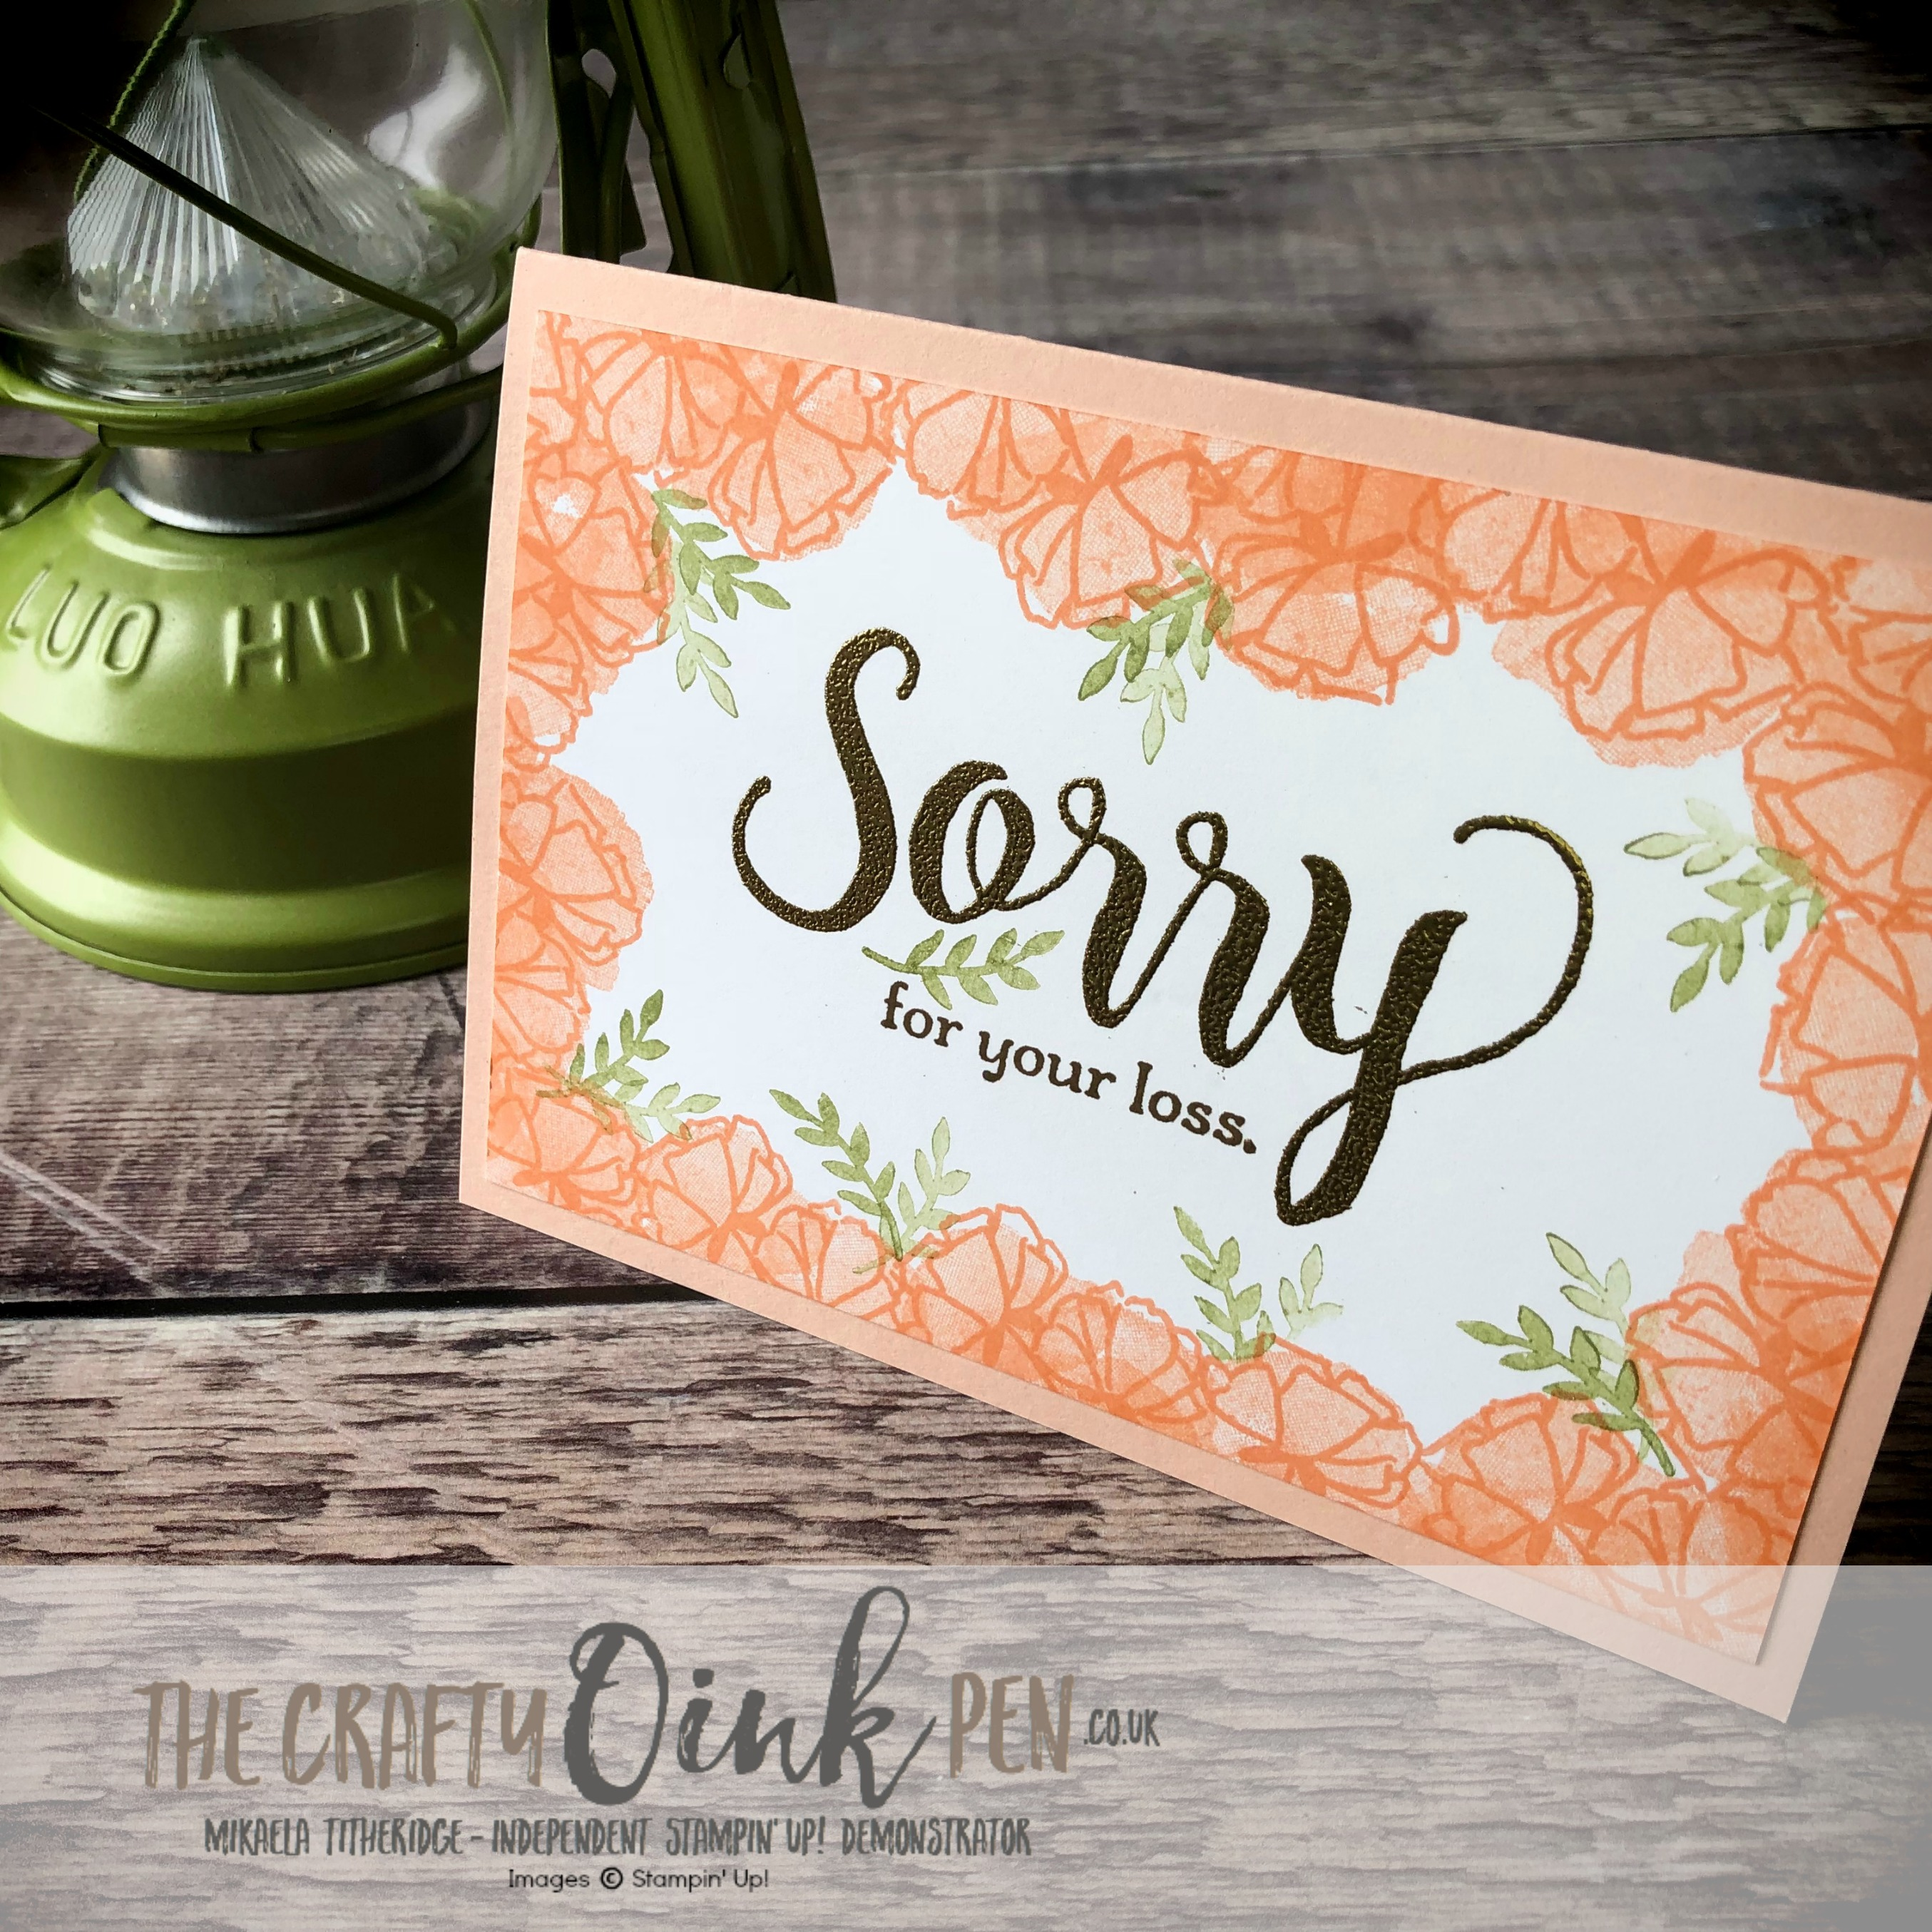 Stamping Sunday Blog Hop - Sorry for Everything for the loss of a loved one, teamed with Share What you Love by Mikaela Titheridge, #6UK Independent Stampin' Up! Demonstrator, The Crafty oINK Pen. Supplies available through my online store 24/7